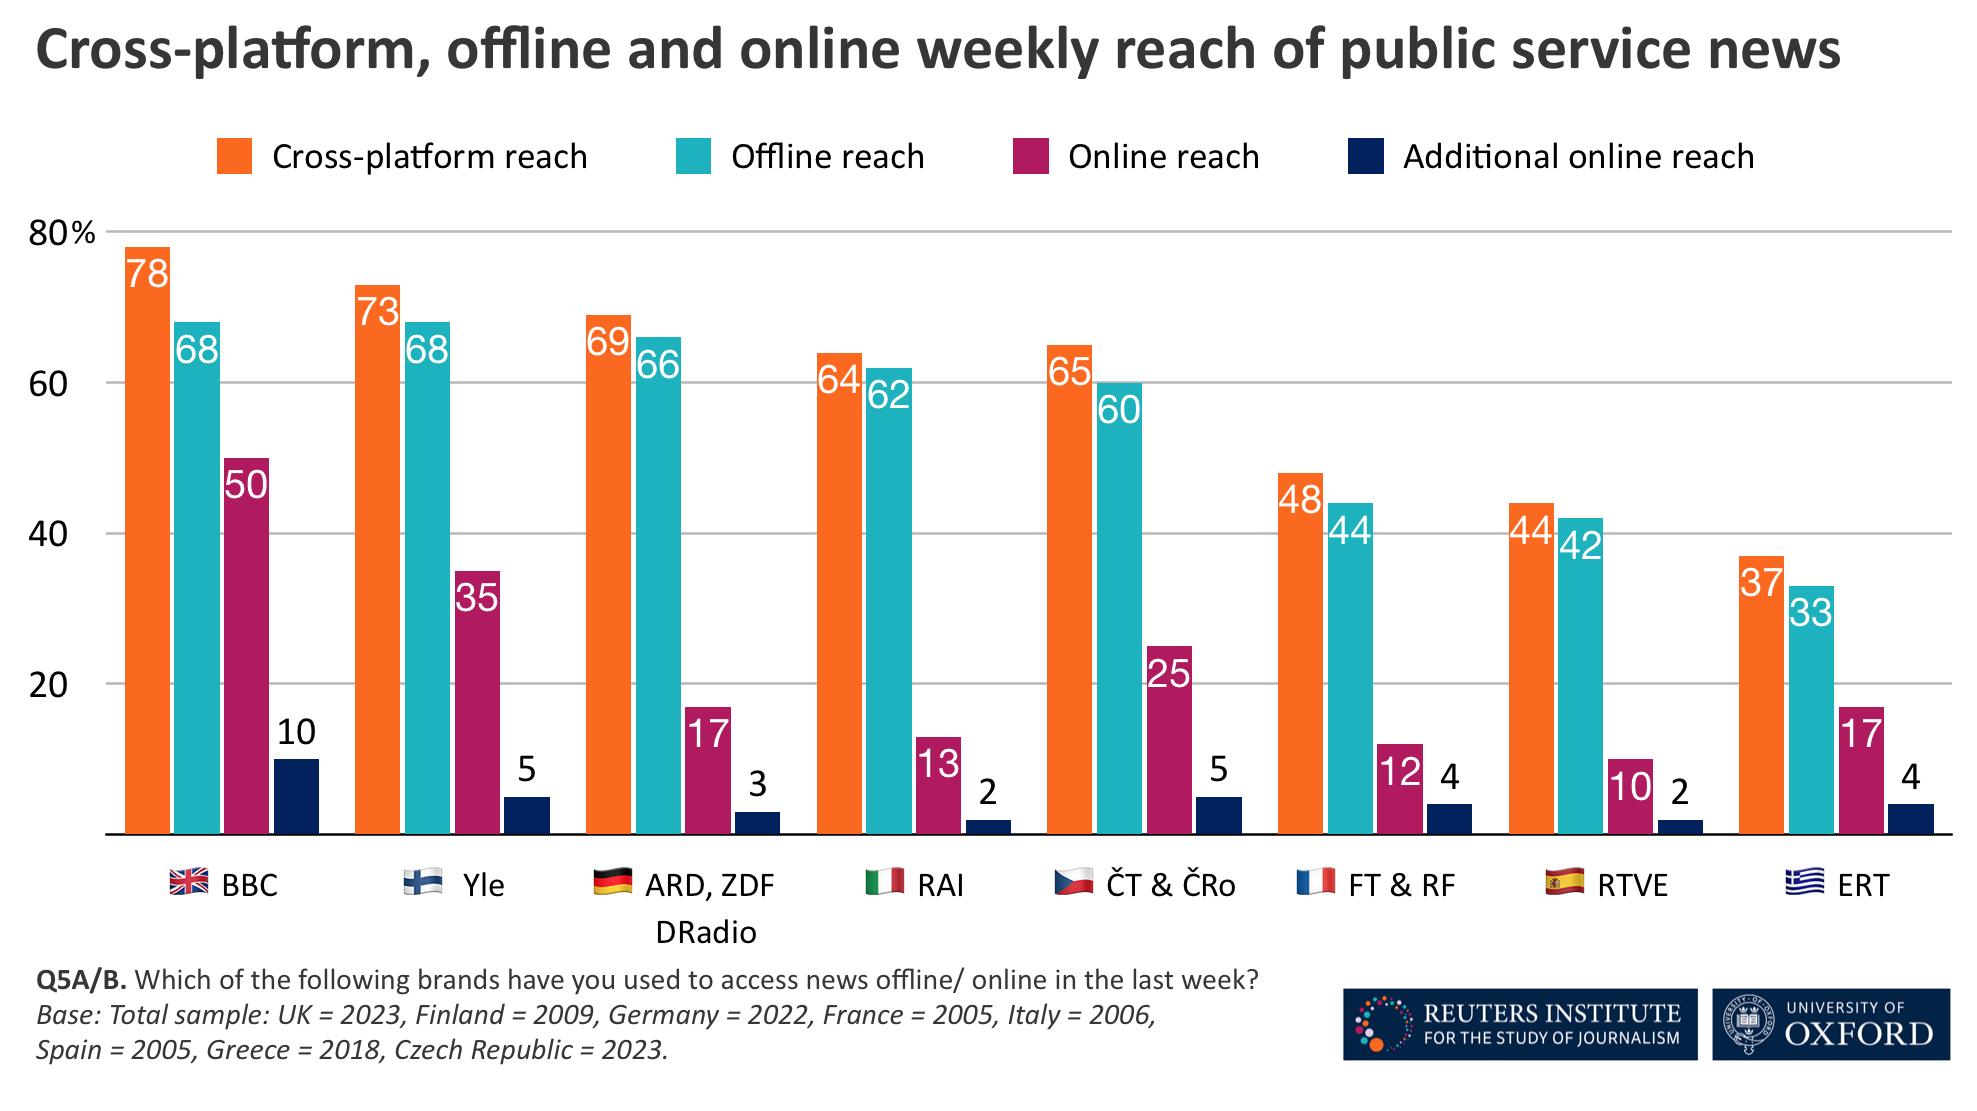 Cross-platform reach of public service media in 8 European countries